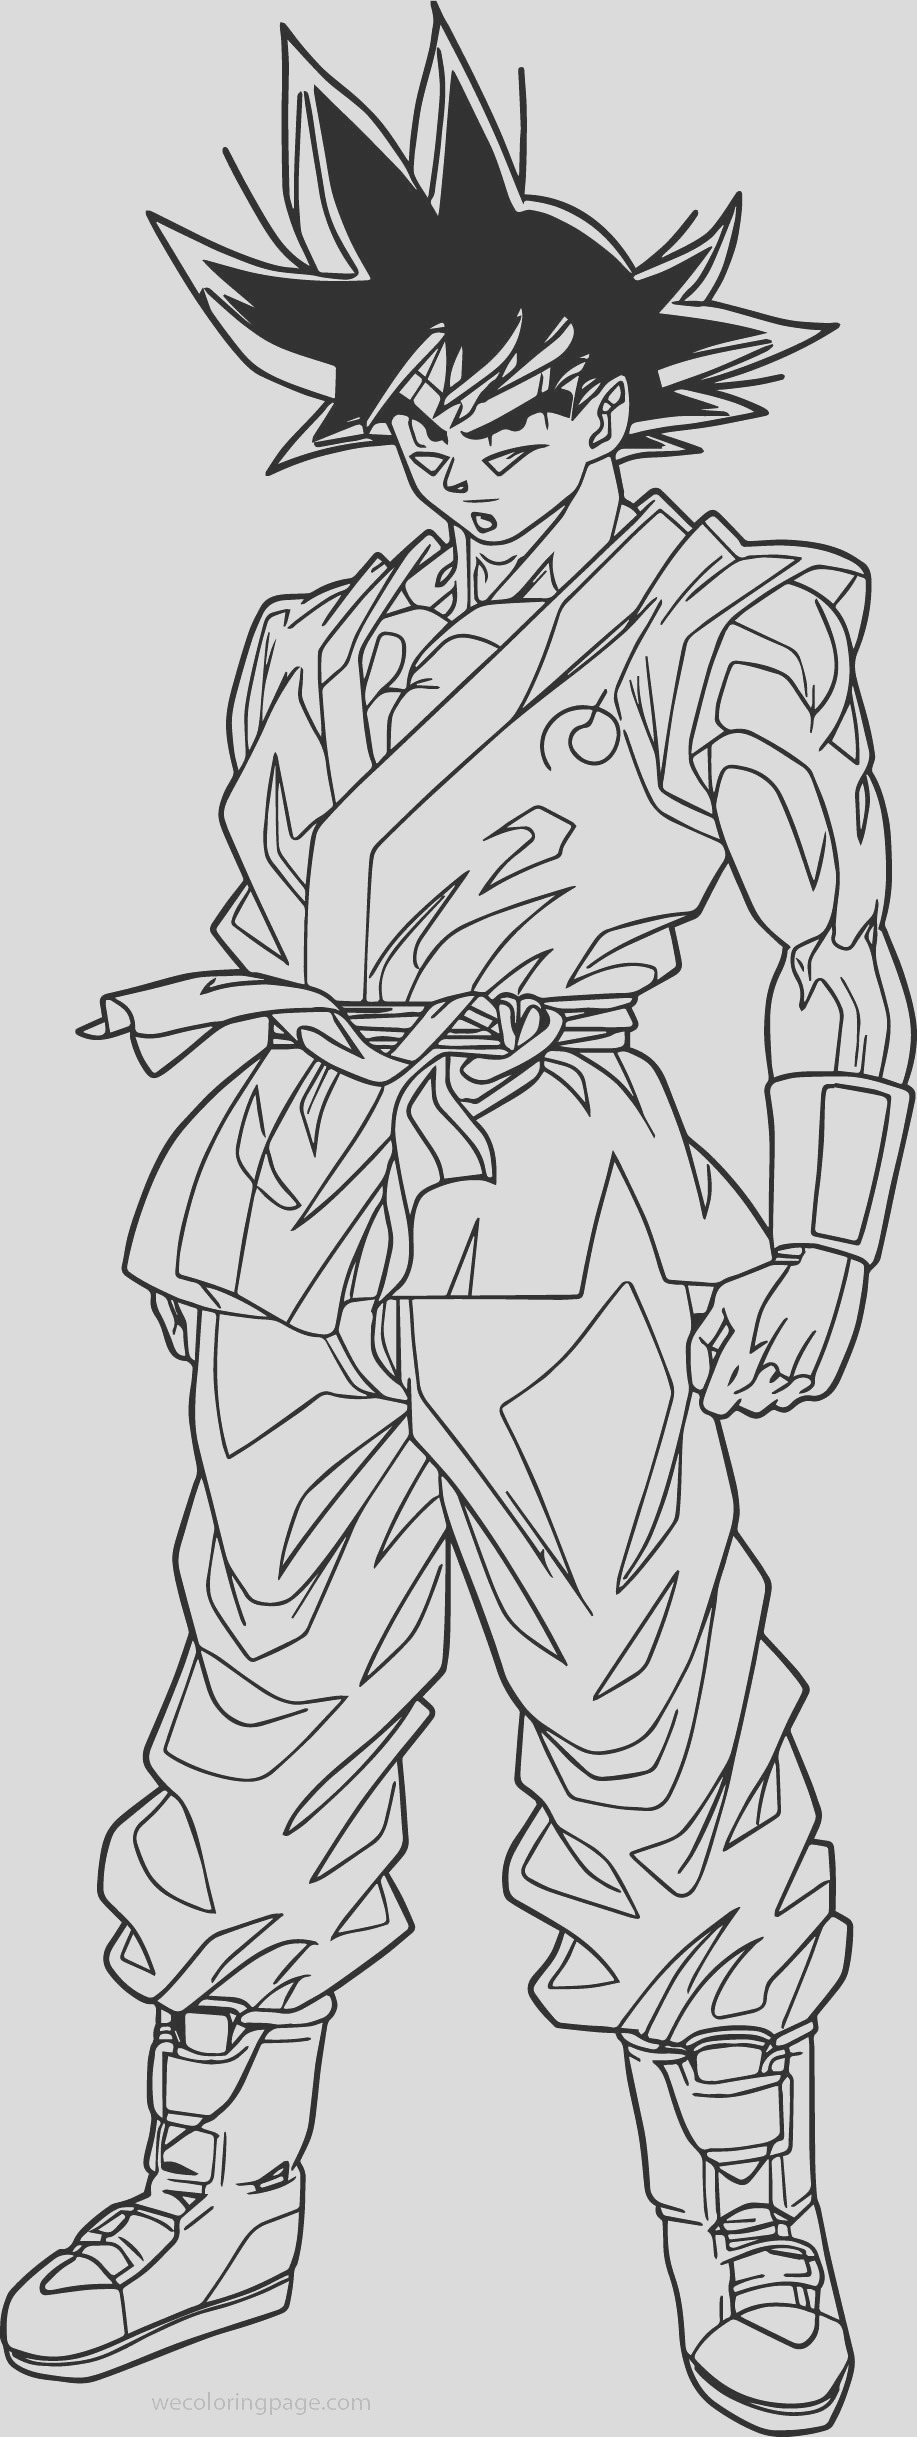 goku waiting coloring page